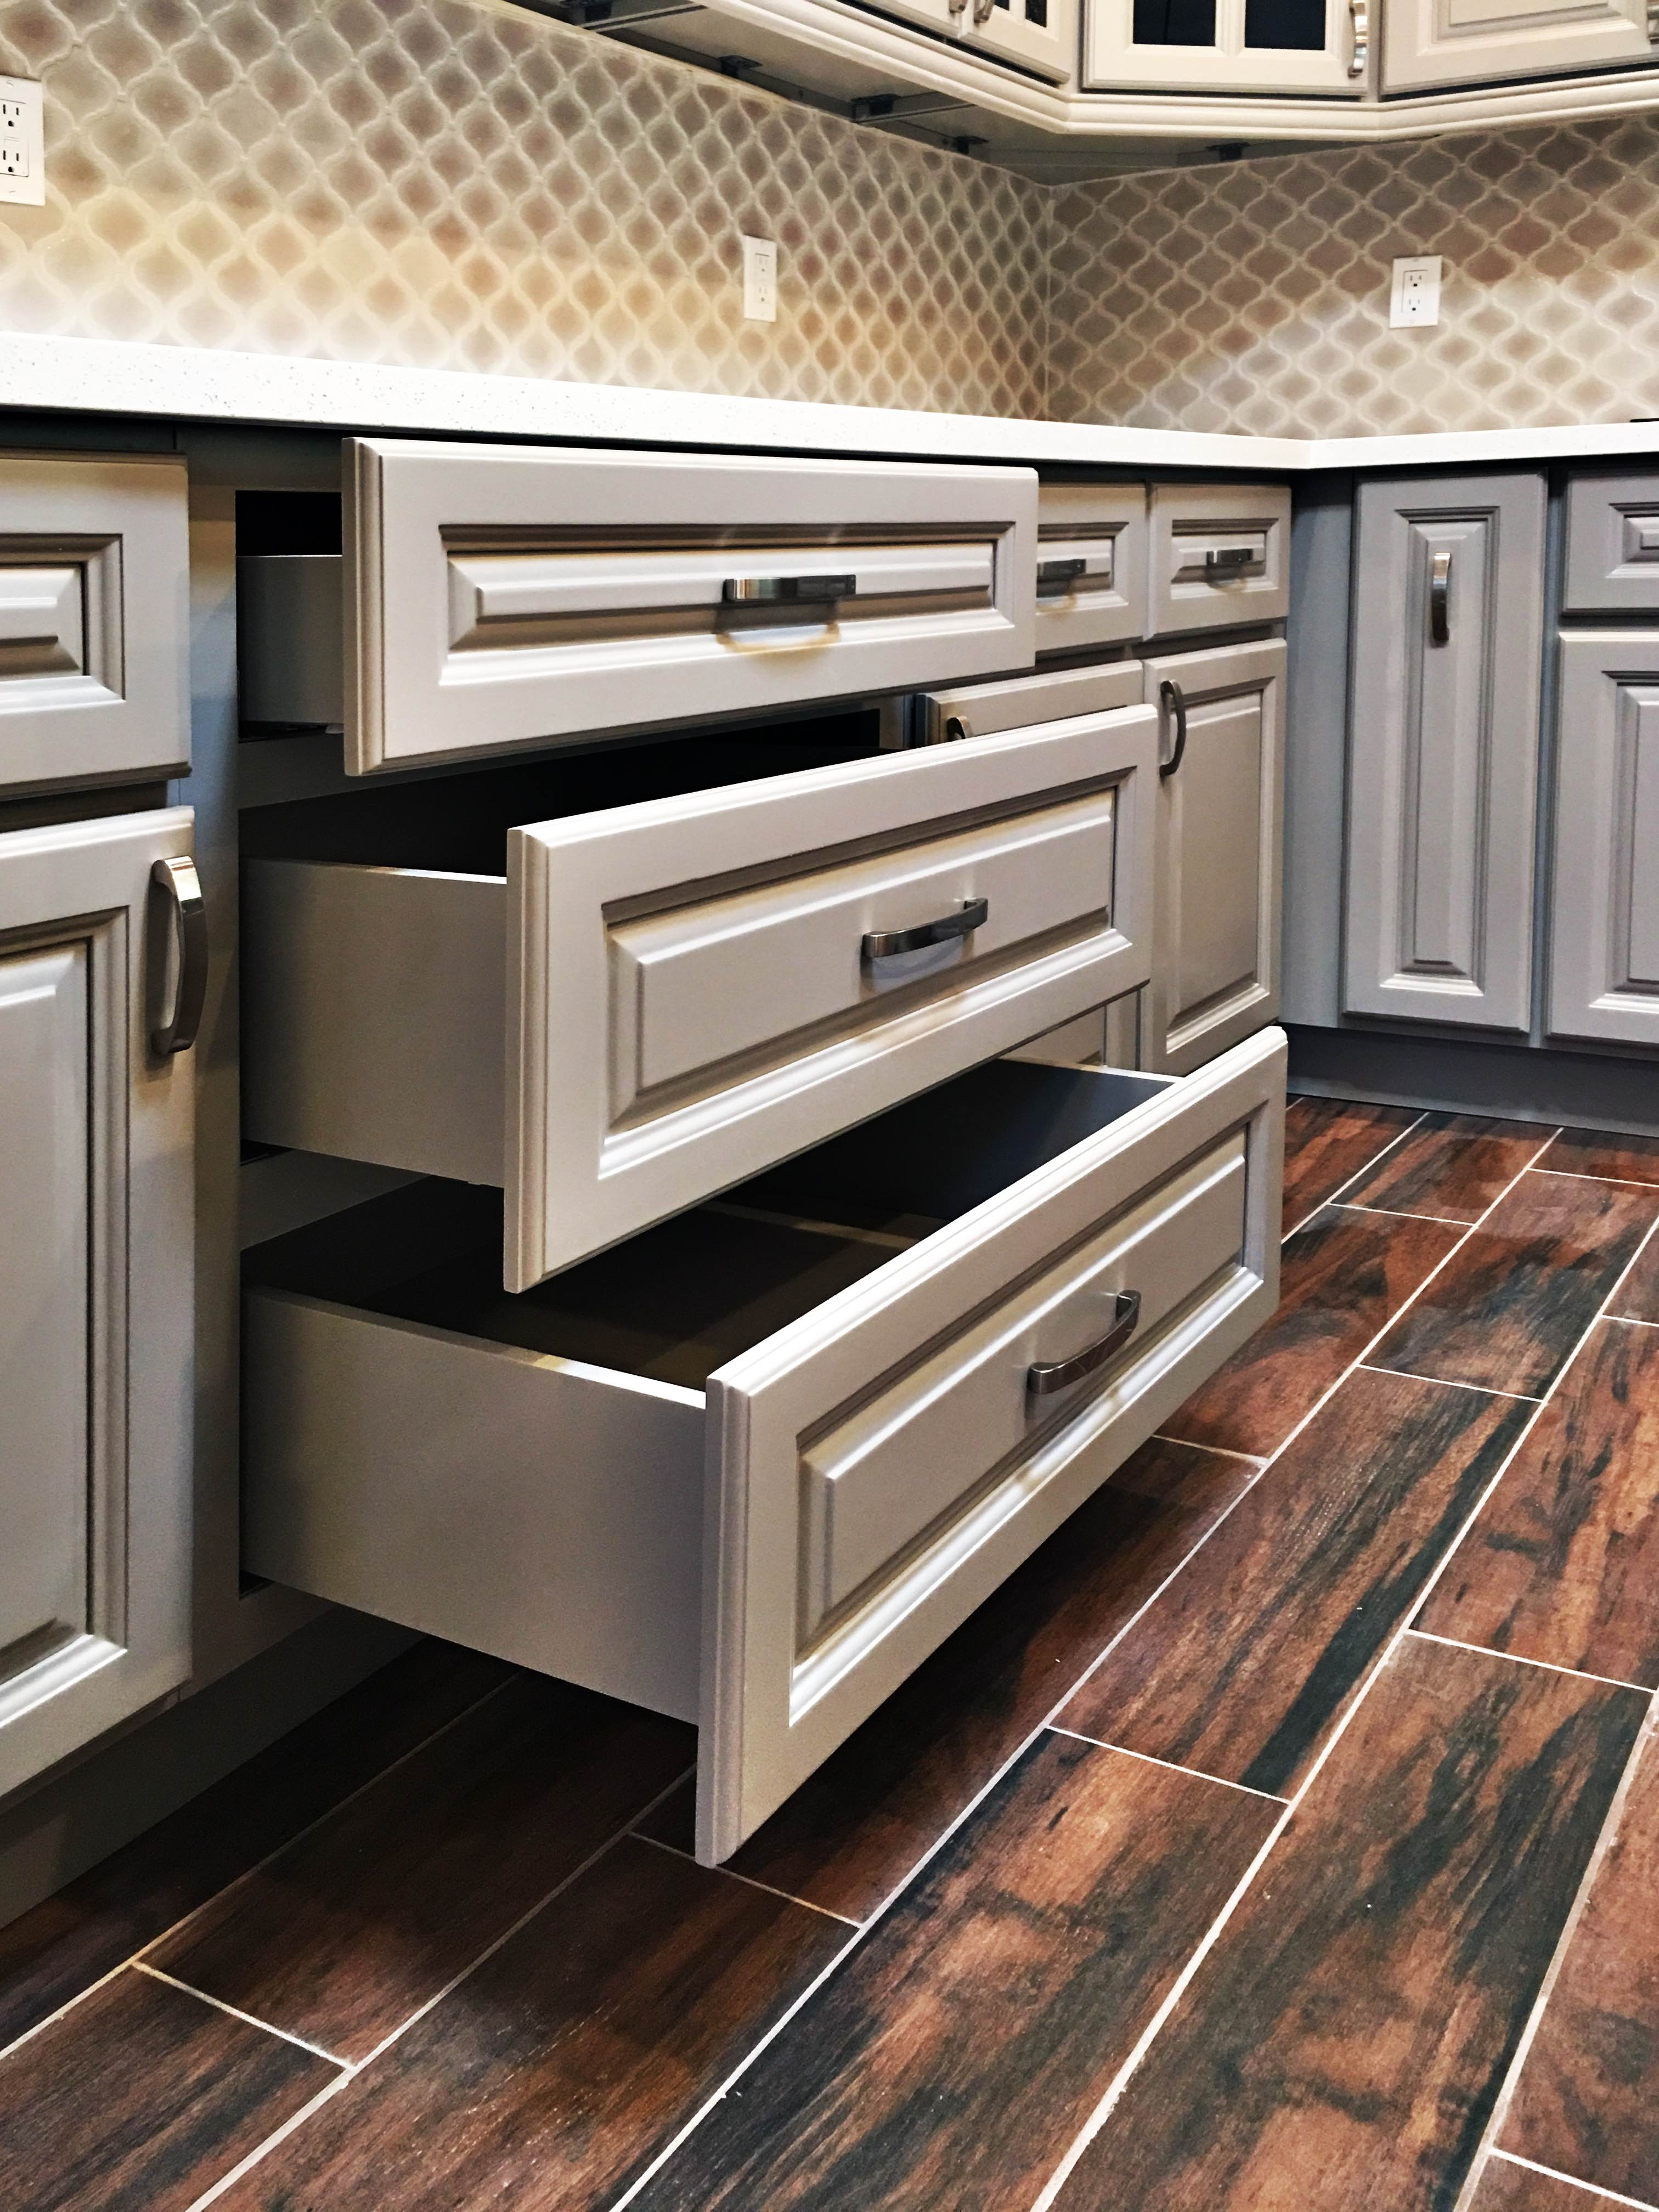 Anaheim Gray Greencastle Cabinetry